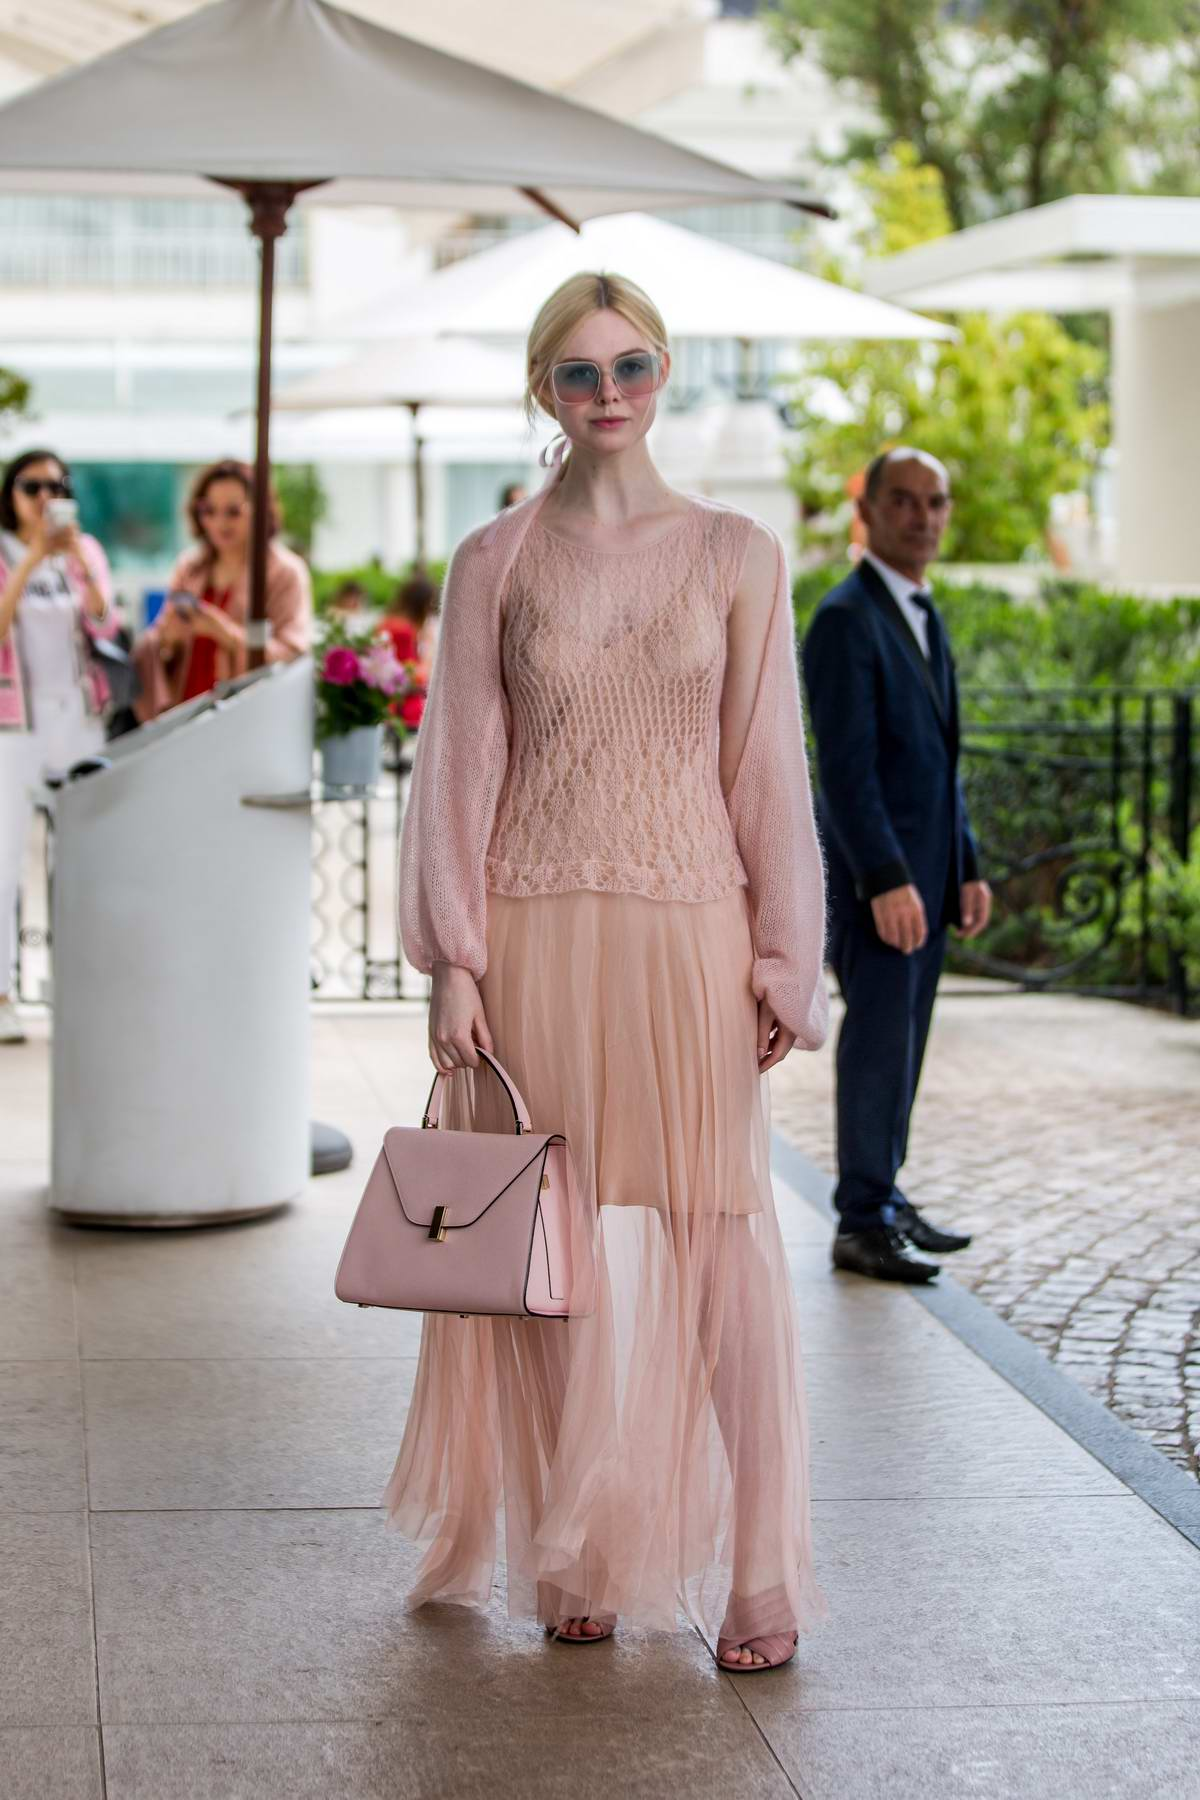 Elle Fanning looks pretty in a blush colored dress as she leaves the Hotel Martinez during the 72nd Cannes Film Festival in Cannes, France